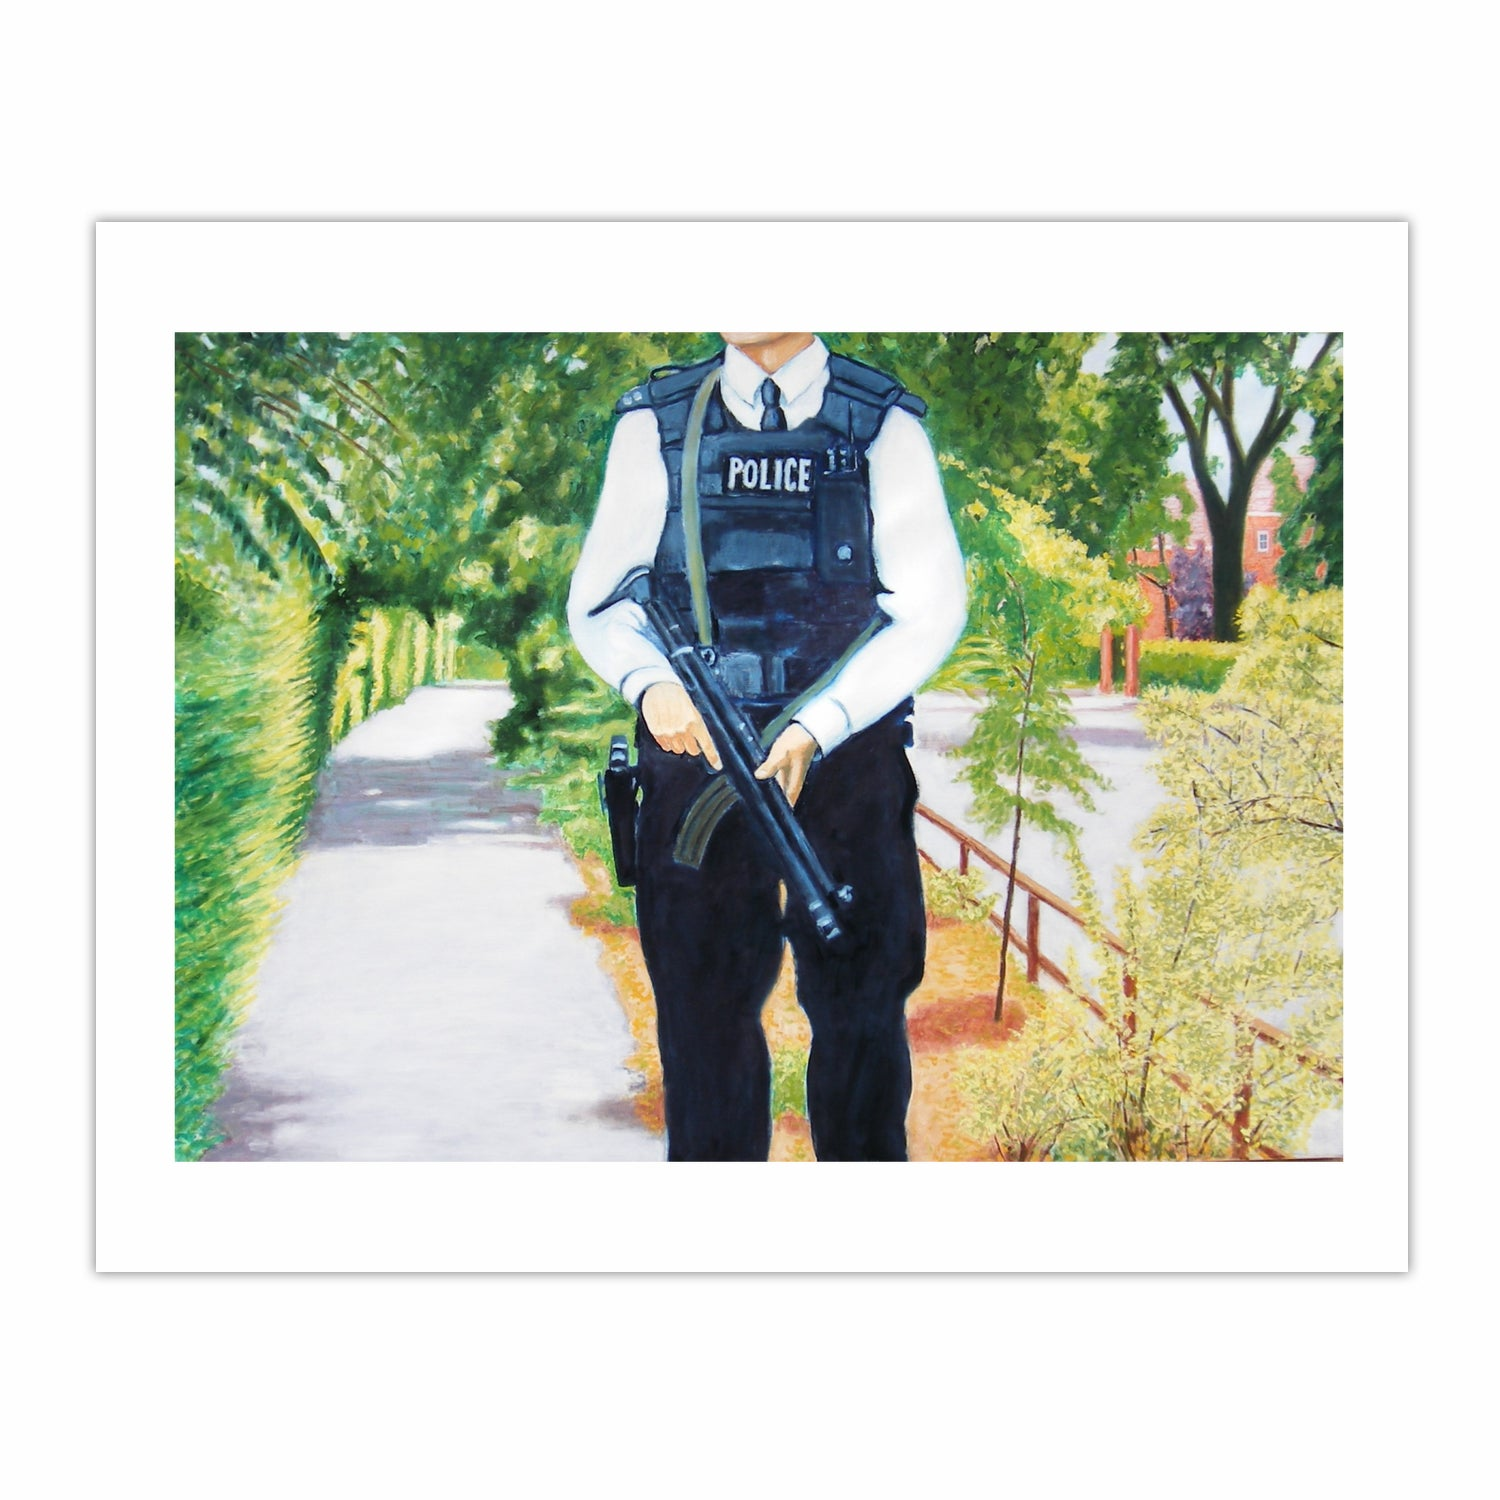 'Armed Police' , (2006), oil on linen, 140 x 100 cm.